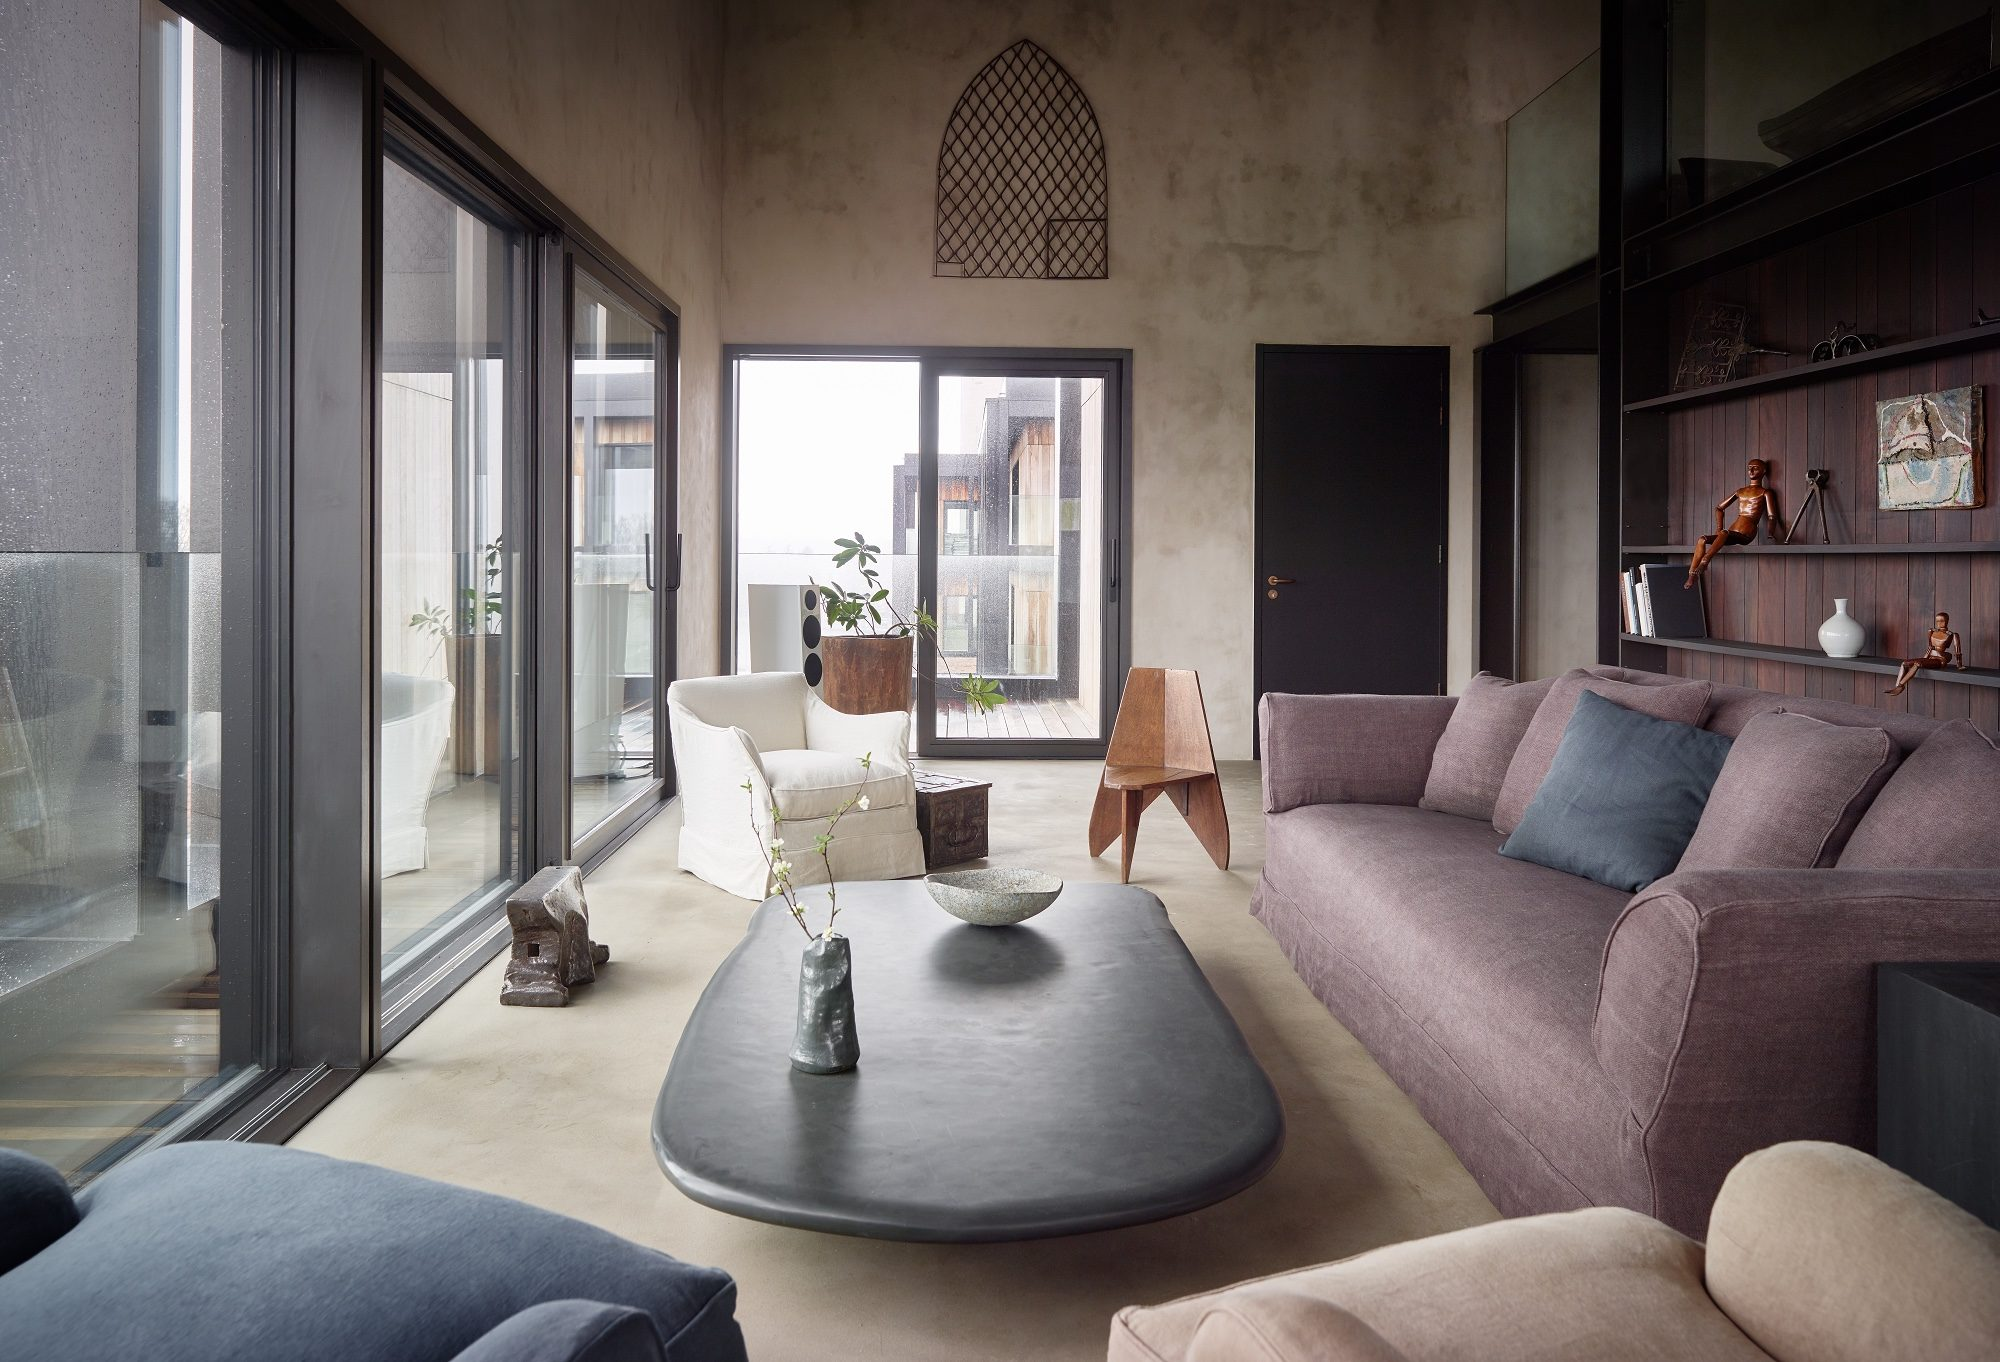 Sitting area with a large sofa from